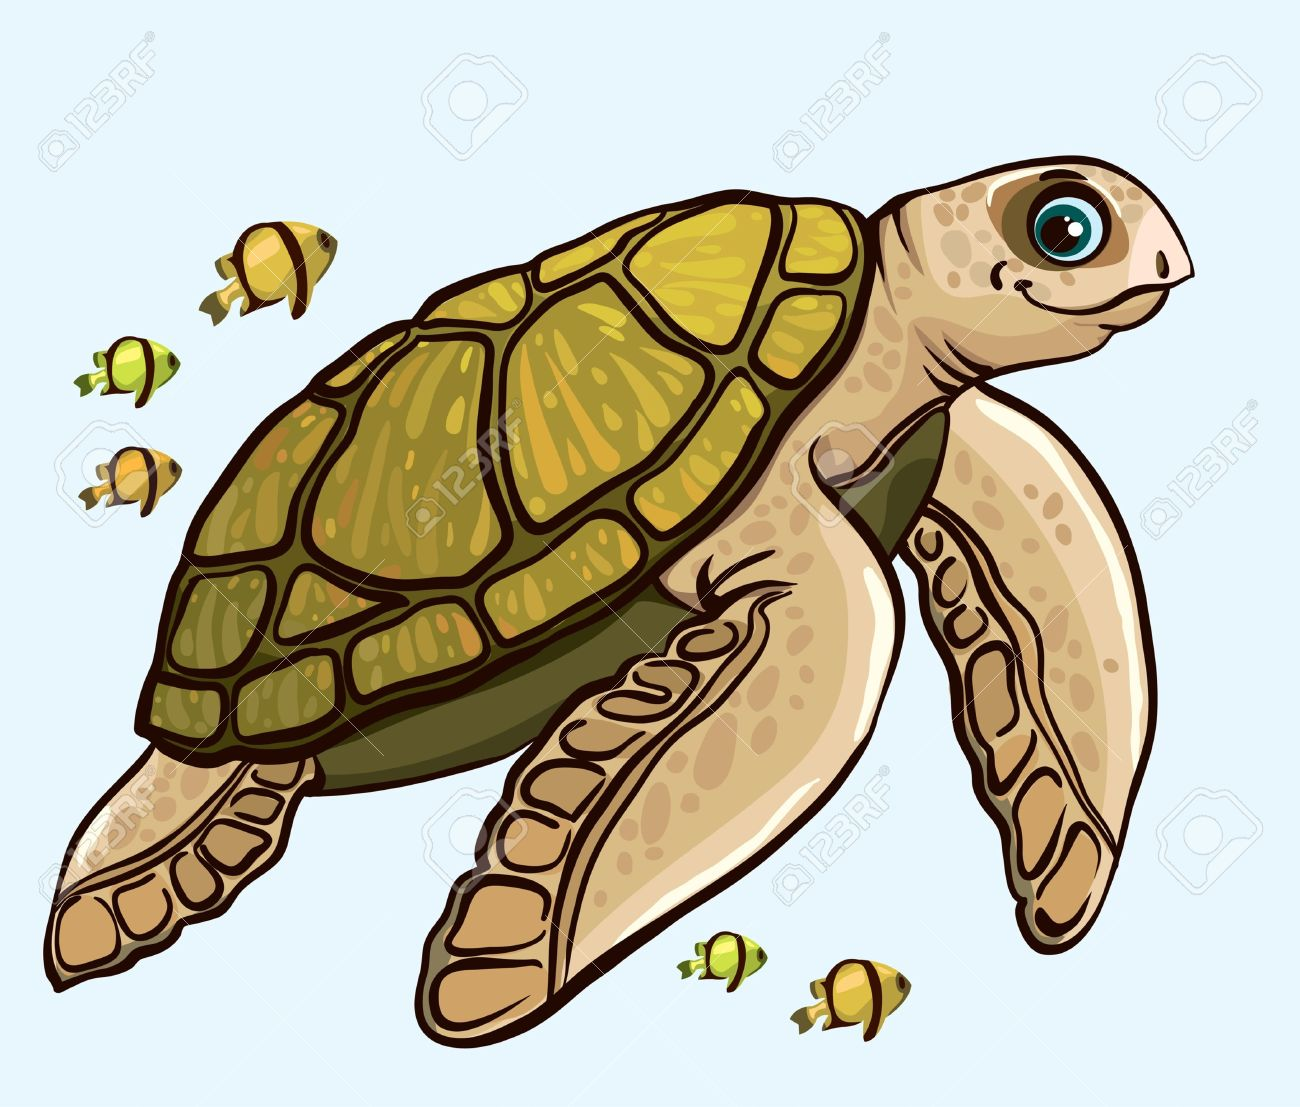 Sea Turtle clipart #7, Download drawings